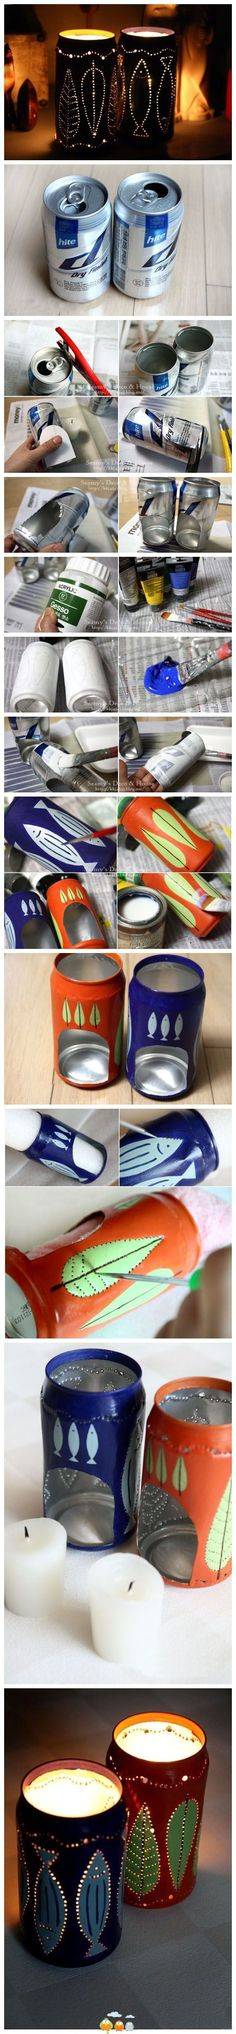 reciclar - Diy for Houses Soda Can Crafts, Fun Crafts, Diy And Crafts, Crafts For Kids, Arts And Crafts, Diy Projects To Try, Craft Projects, Aluminum Can Crafts, Aluminum Cans